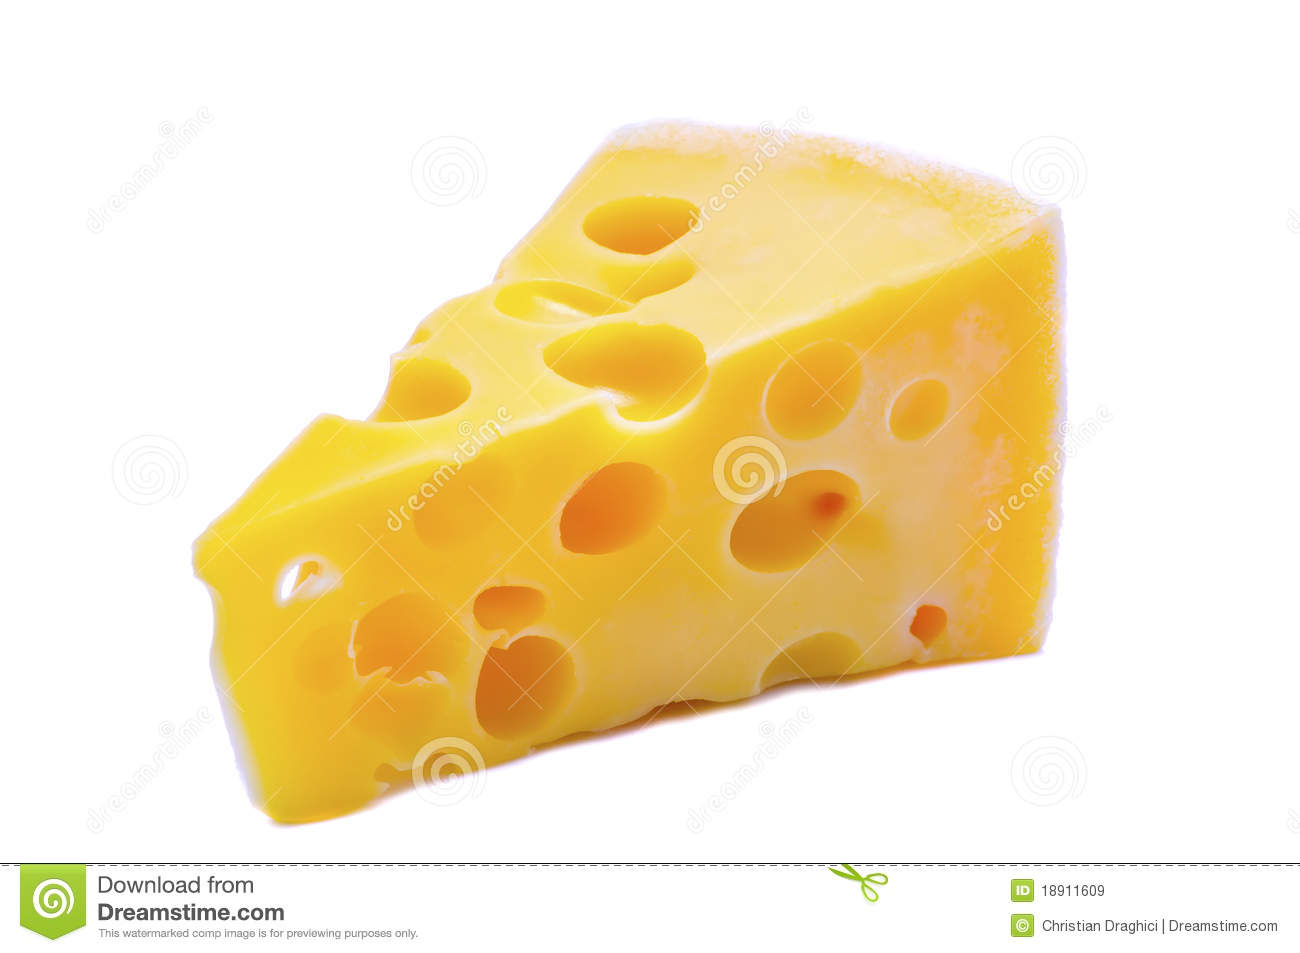 Swiss Cheese With Holes Royalty Free Stock Images - Image: 18911609: https://www.dreamstime.com/royalty-free-stock-images-swiss-cheese...